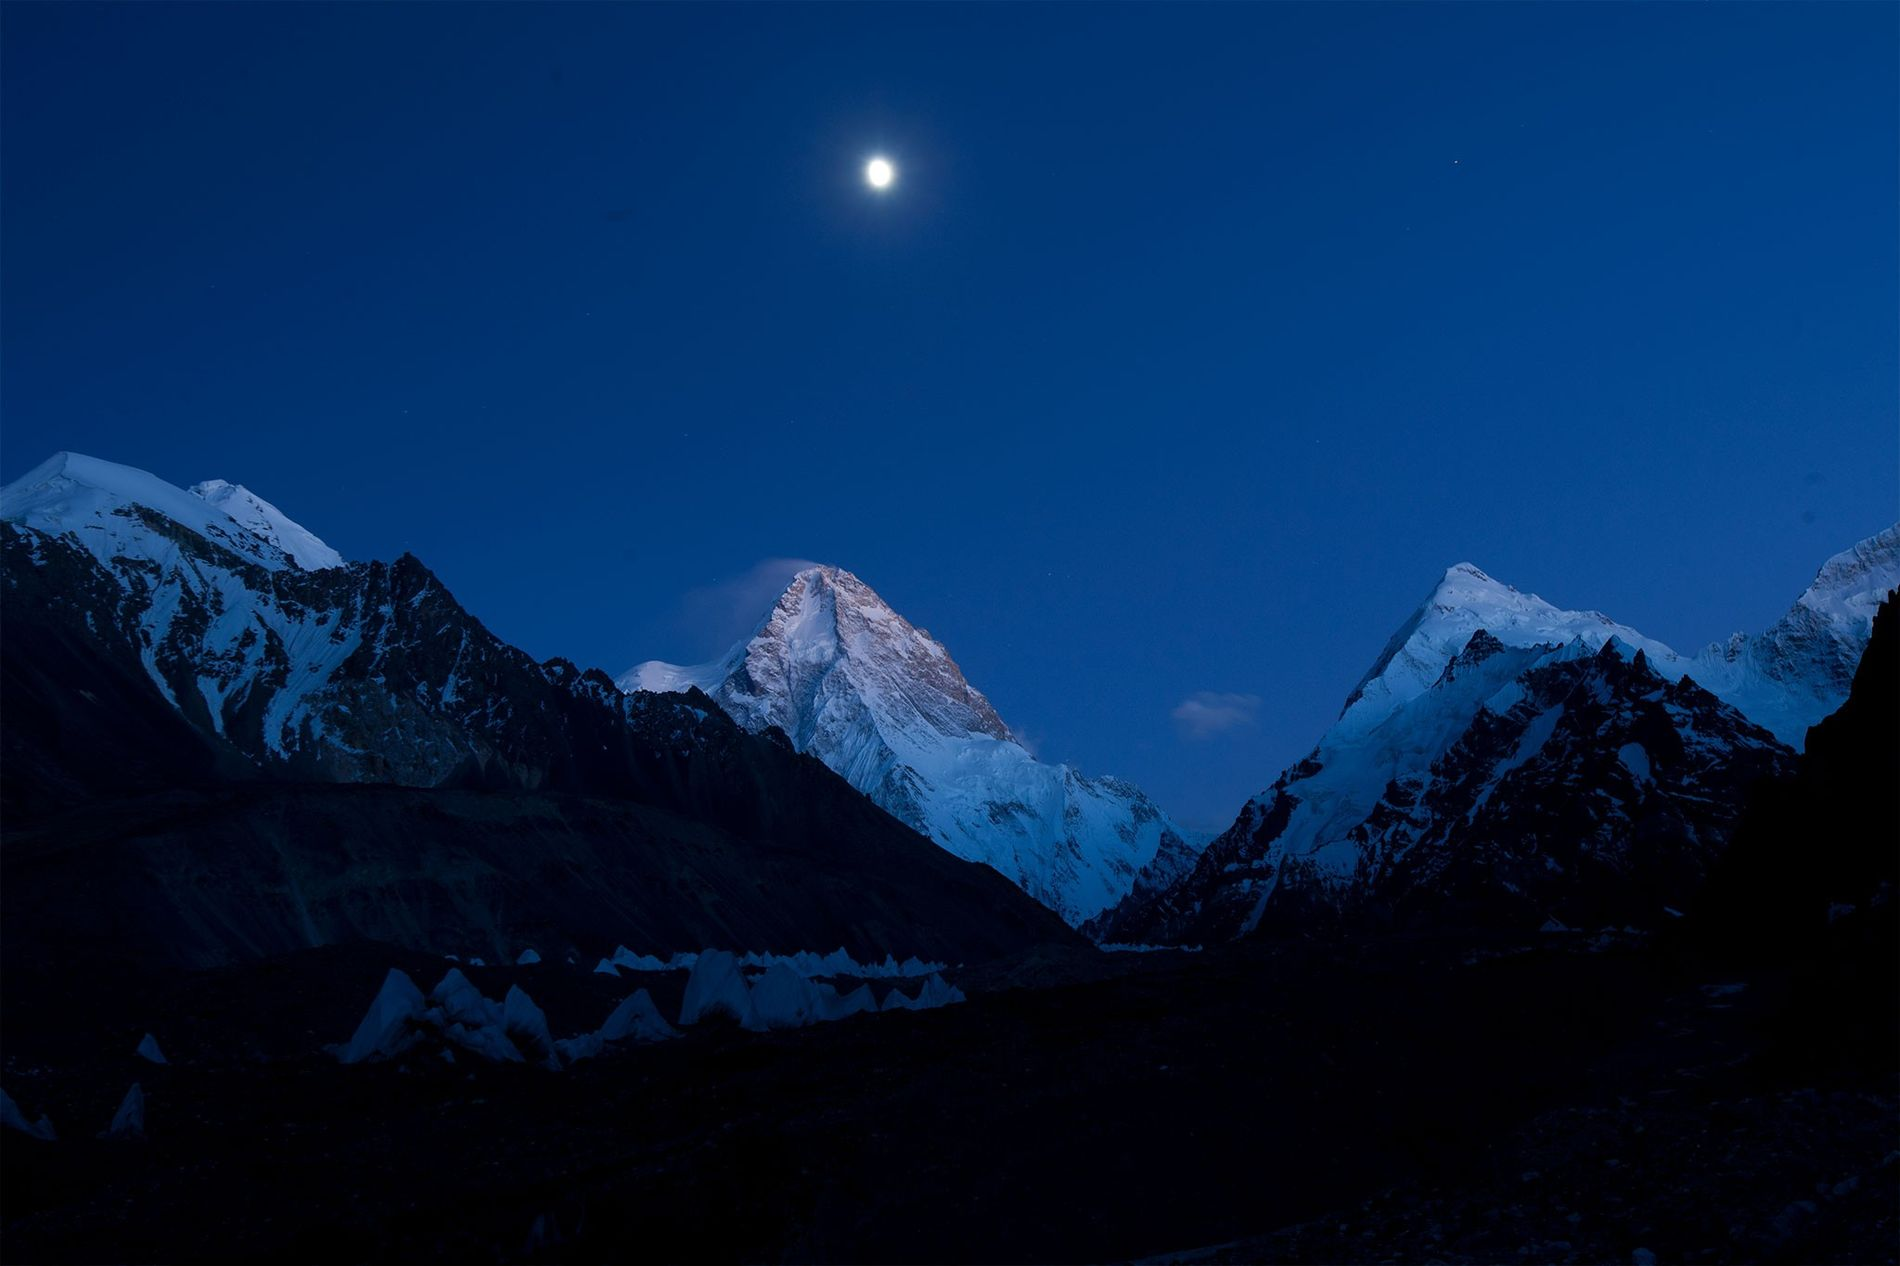 A full moon illuminates K2.